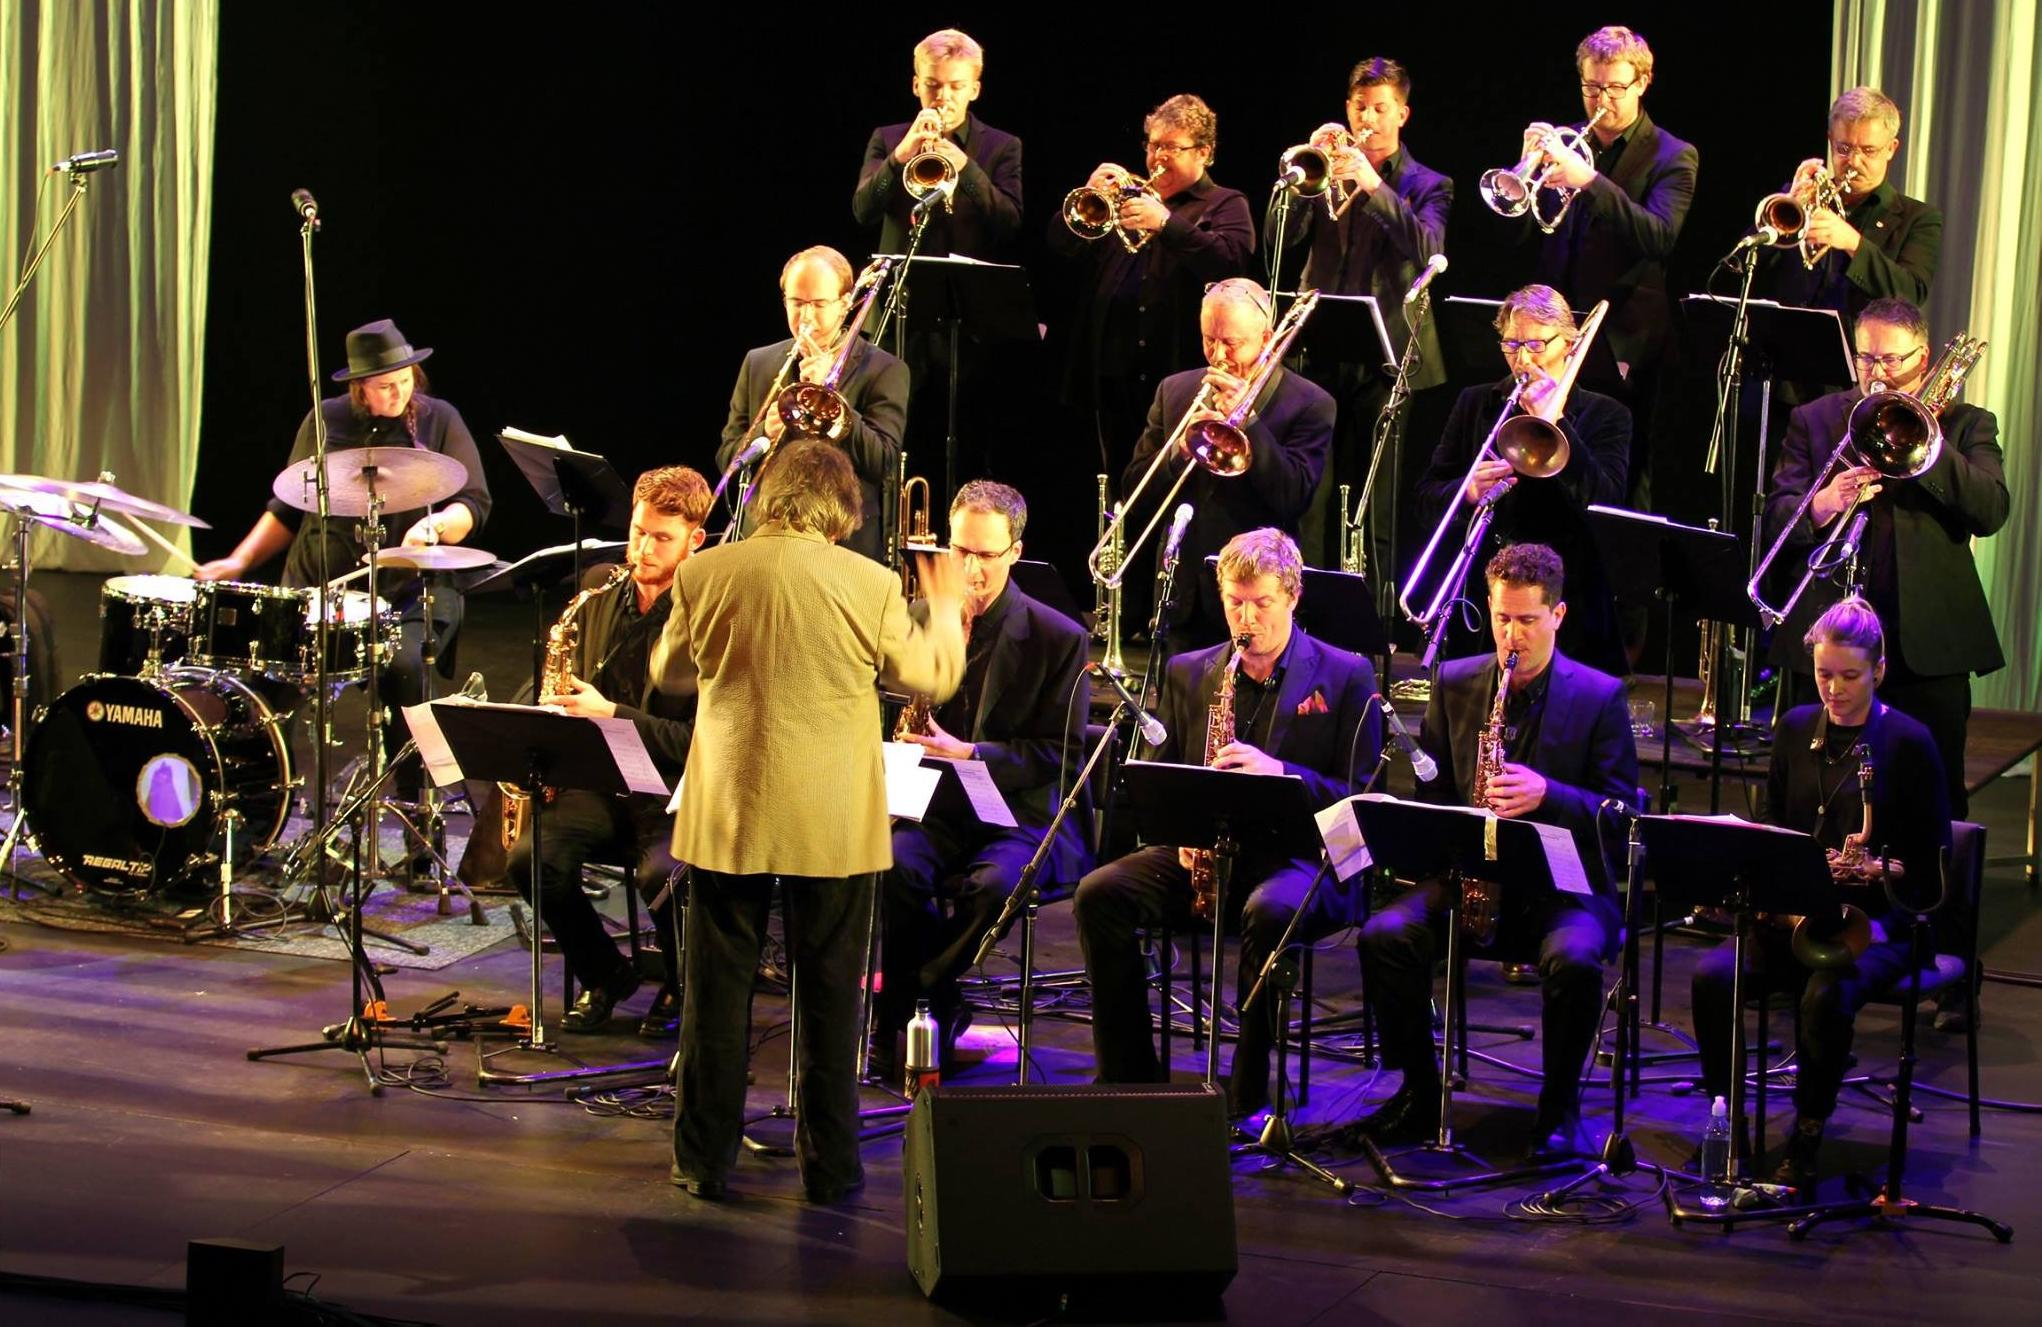 The Rodger Fox Big Band